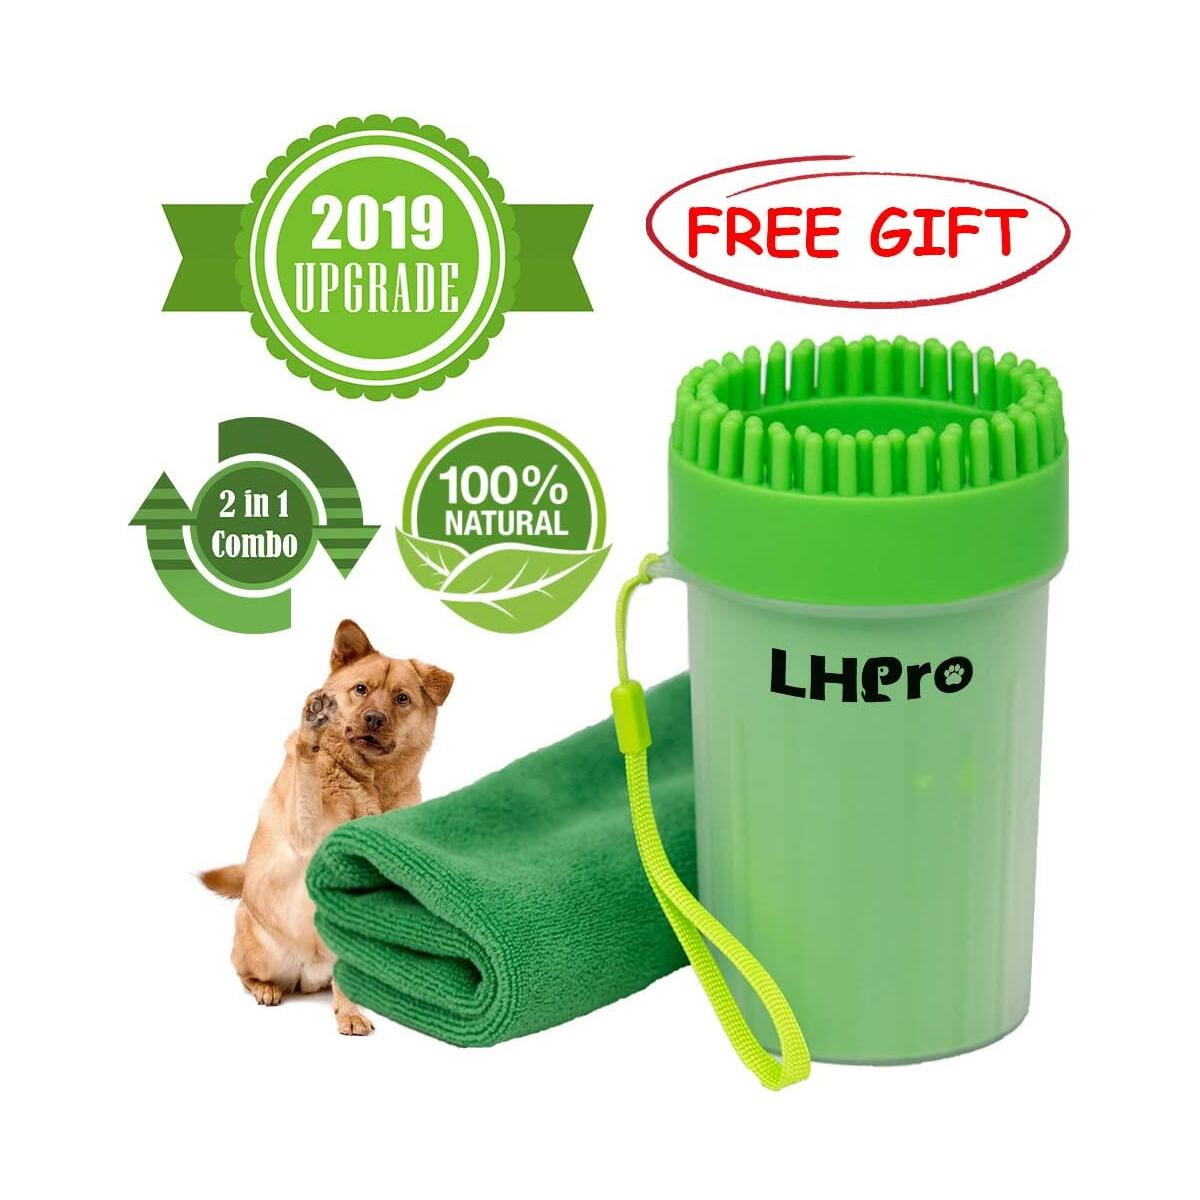 LHPro Portable Upgrade Dog Paw Cleaner - Handy Mud Buster Cup Paw Plunger for Cleaning Massaging Grooming Brushing Body and Foot for Big Medium Small Dog or Puppy Indoor Outdoor Anywhere